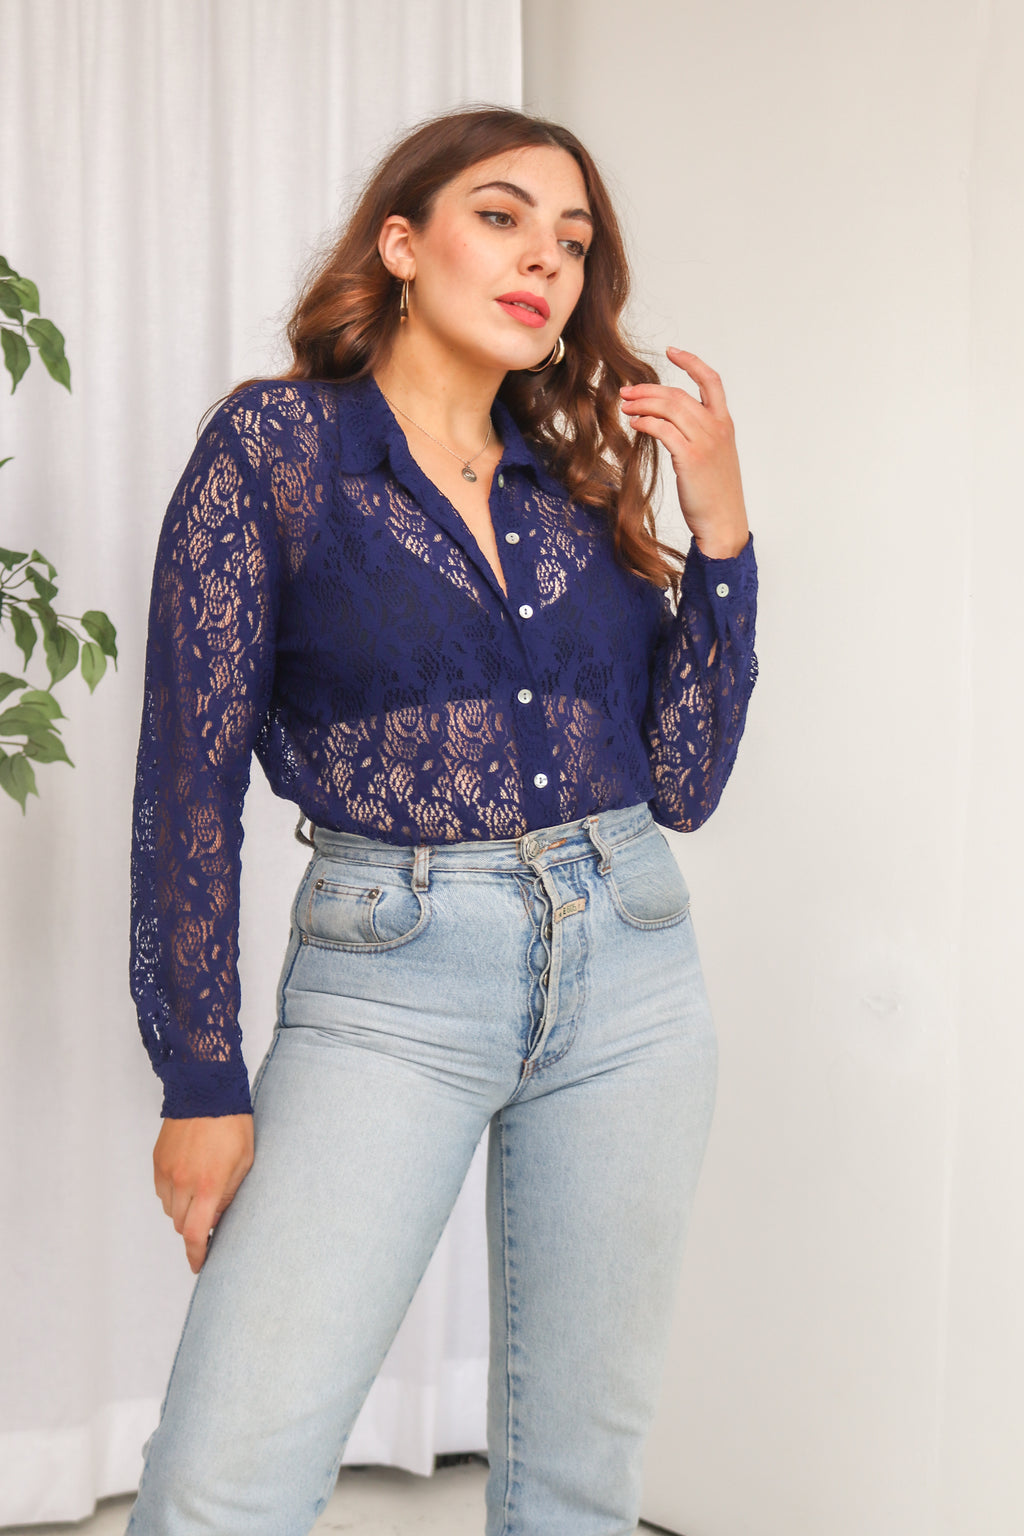 VintageLace Blouse in Navy - Dirty Disco